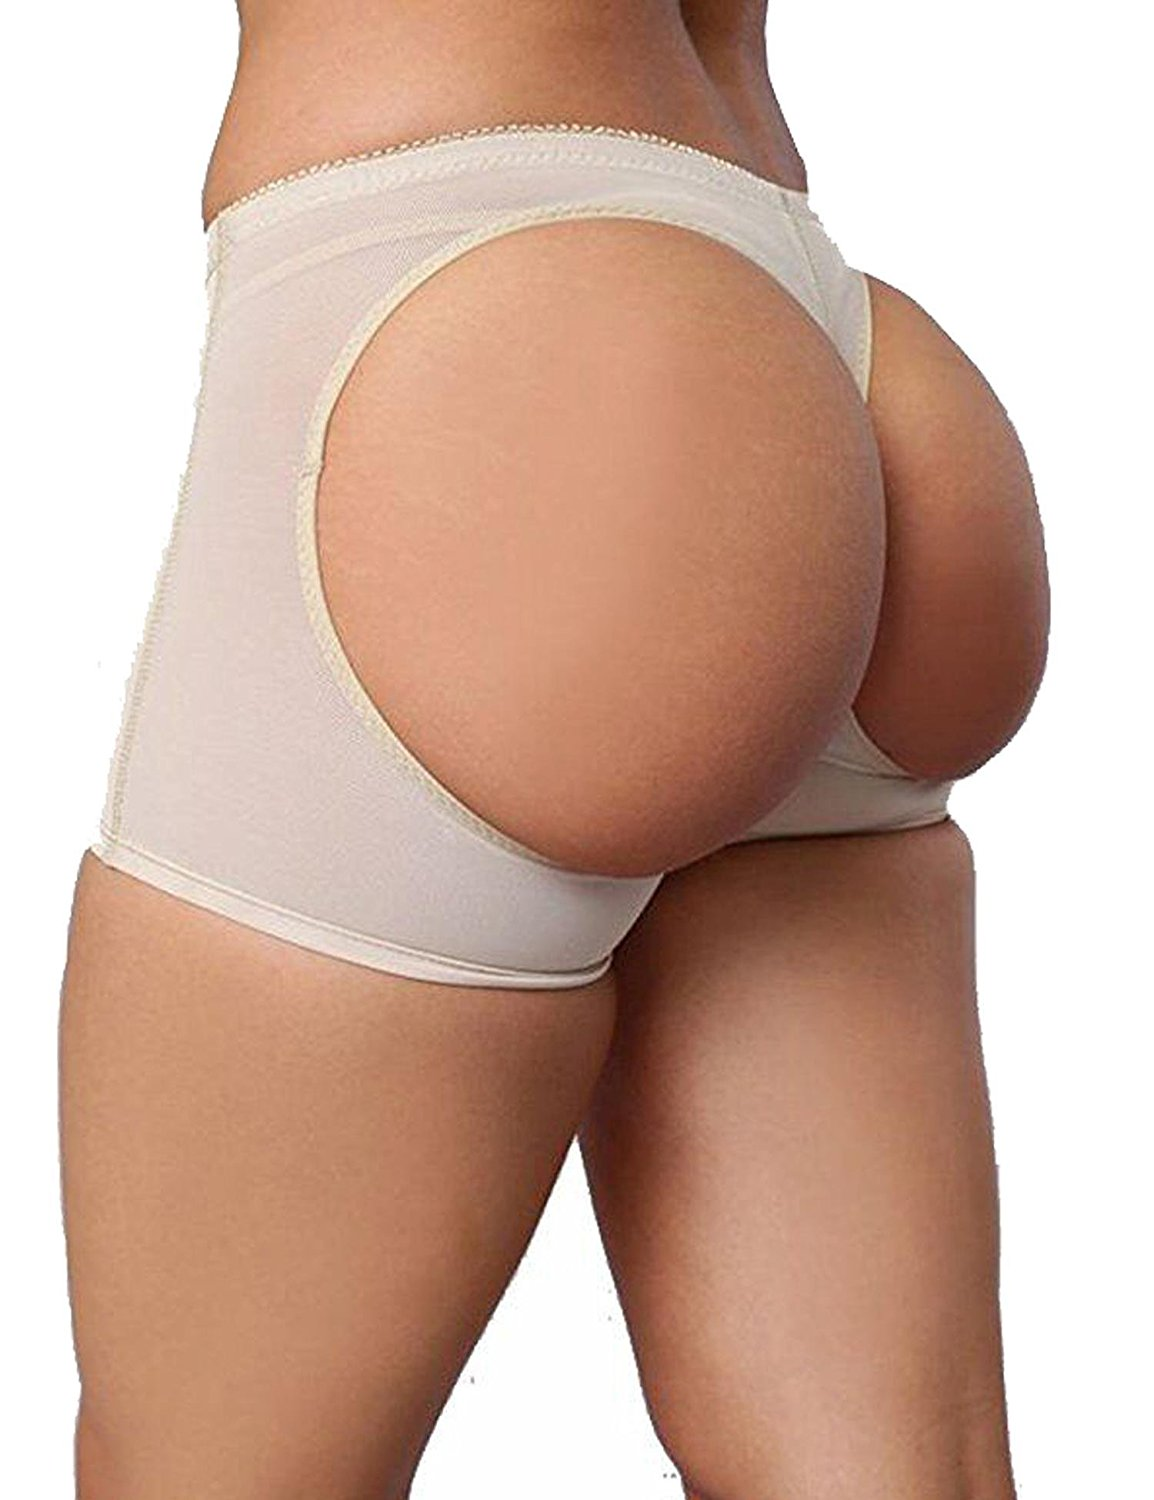 7b07ef7e2 Get Quotations · PEATAO Women Butt Lifter Shaper Bum Lift Pants Buttocks  Enhancer Boyshorts